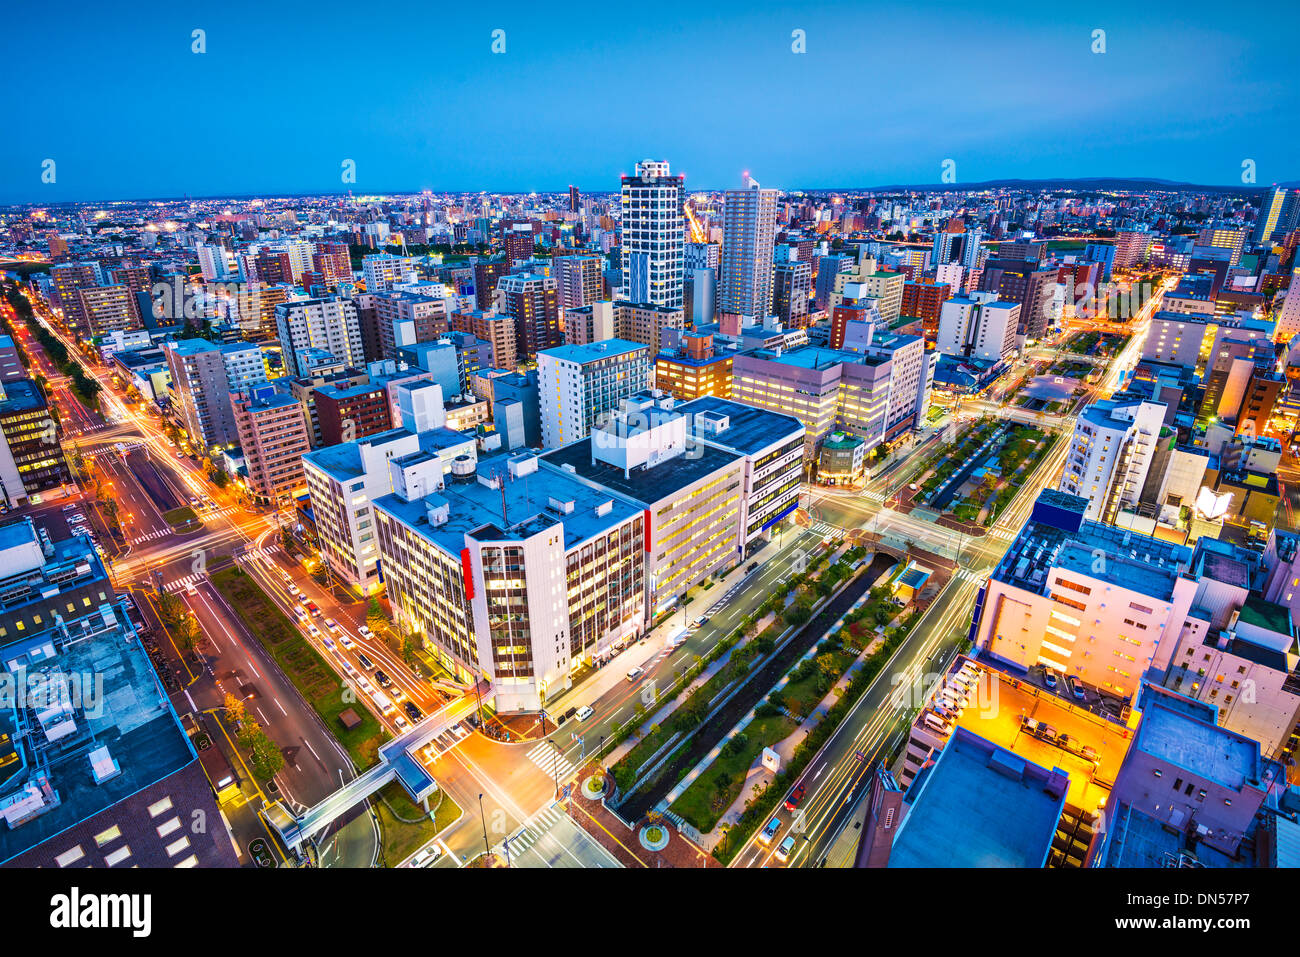 Sapporo, Japon paysage urbain dans le quartier central. Photo Stock